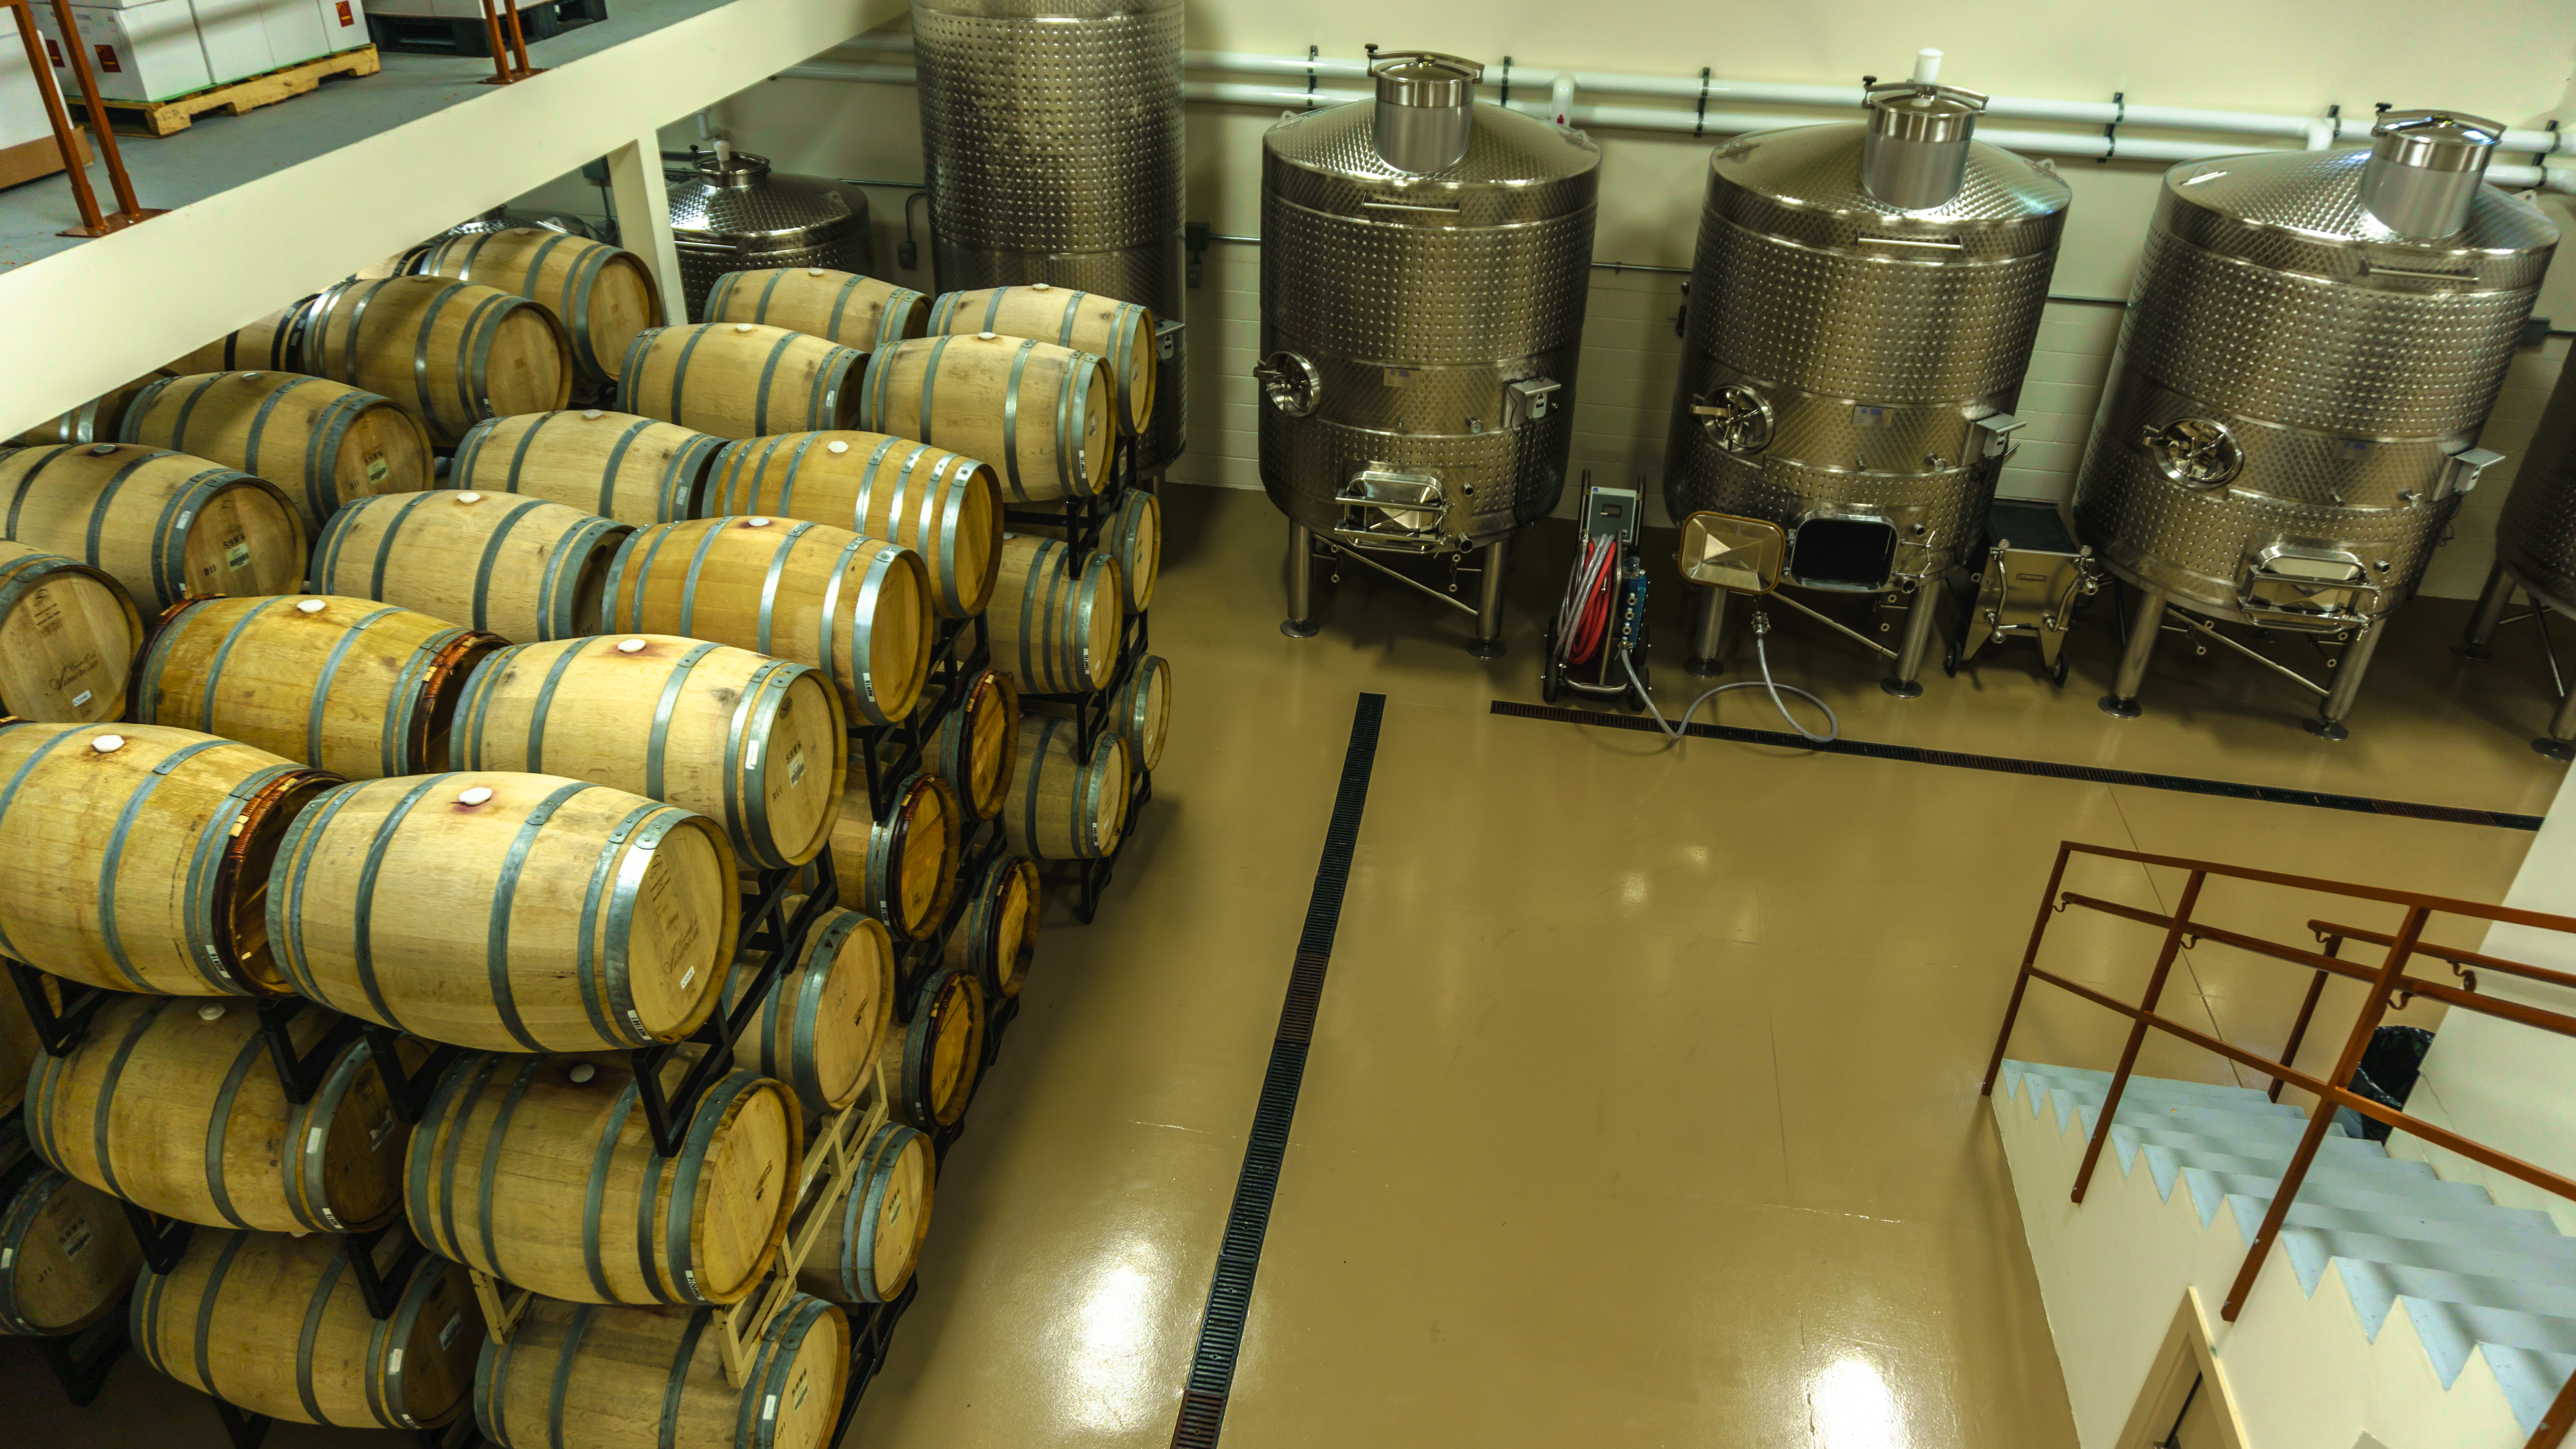 Steel tanks and wine barrels winery